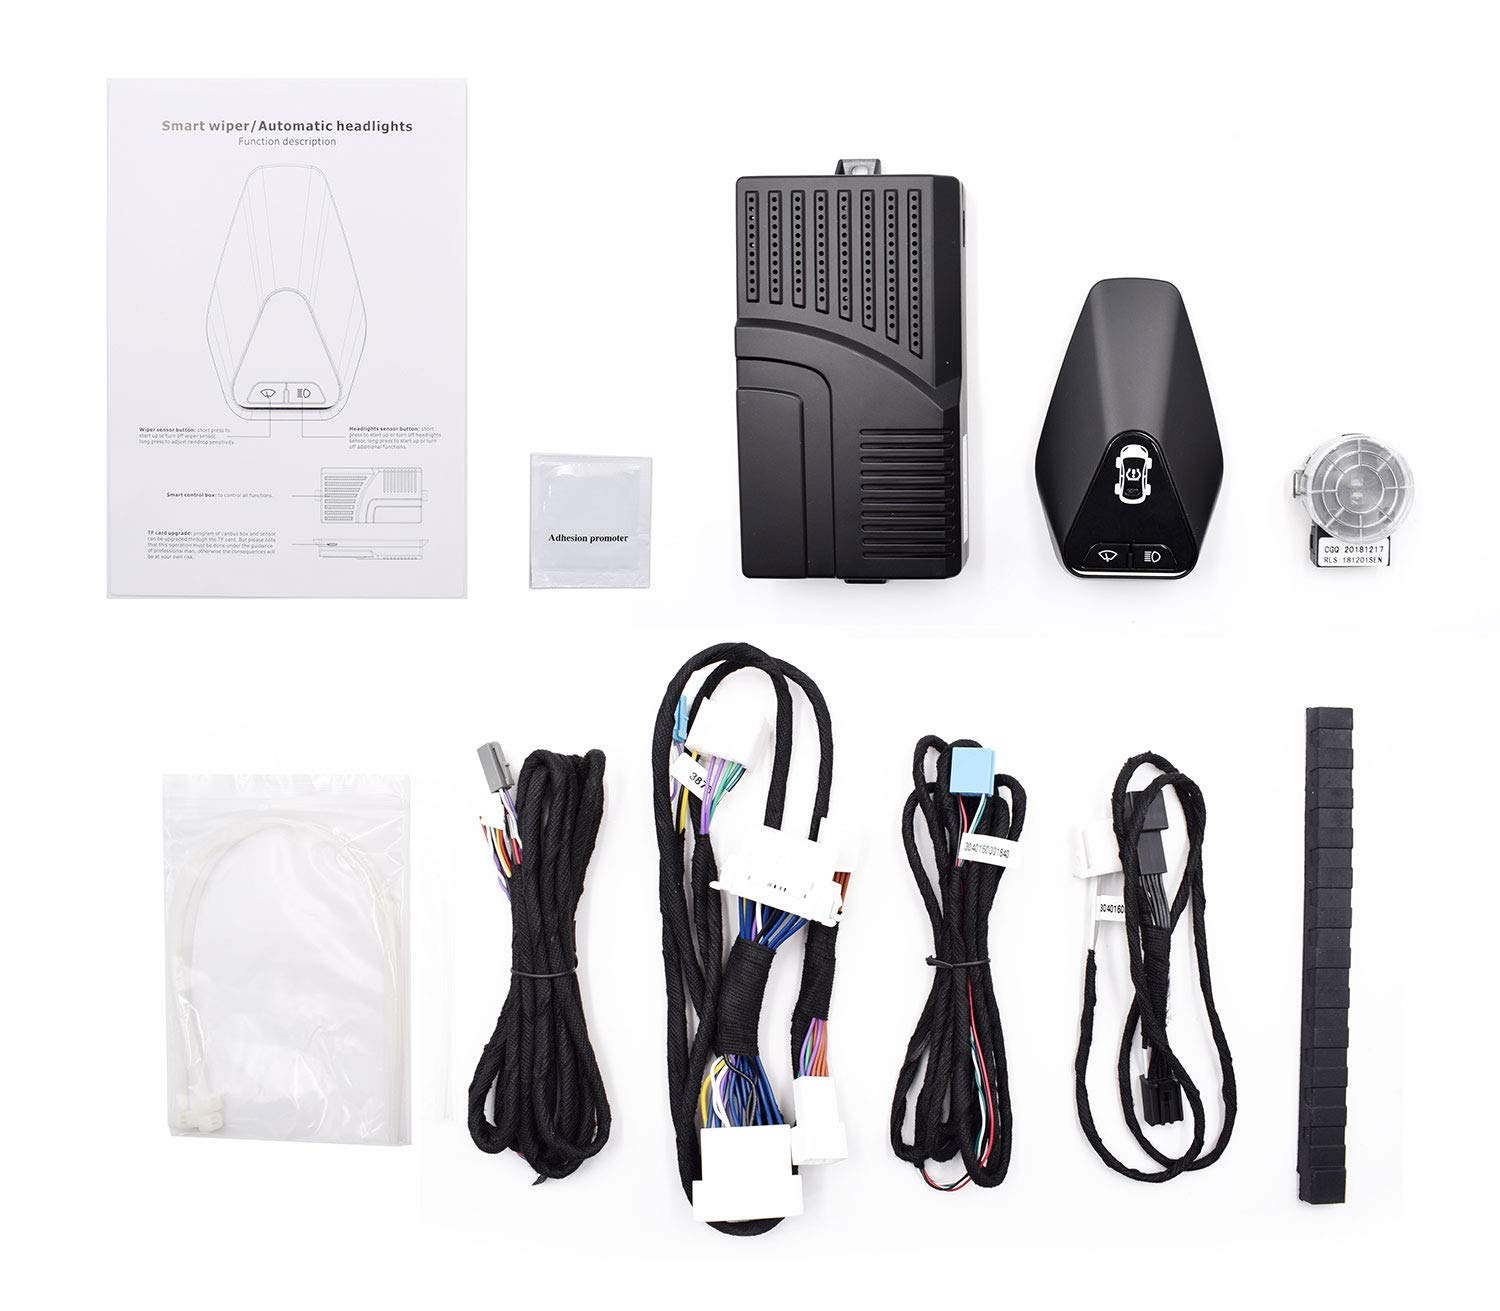 SVVSS Automatic rain Sensing Wipers and Headlight Sensor Smart Driving Assistant for Toyota by SVVSS (Image #5)